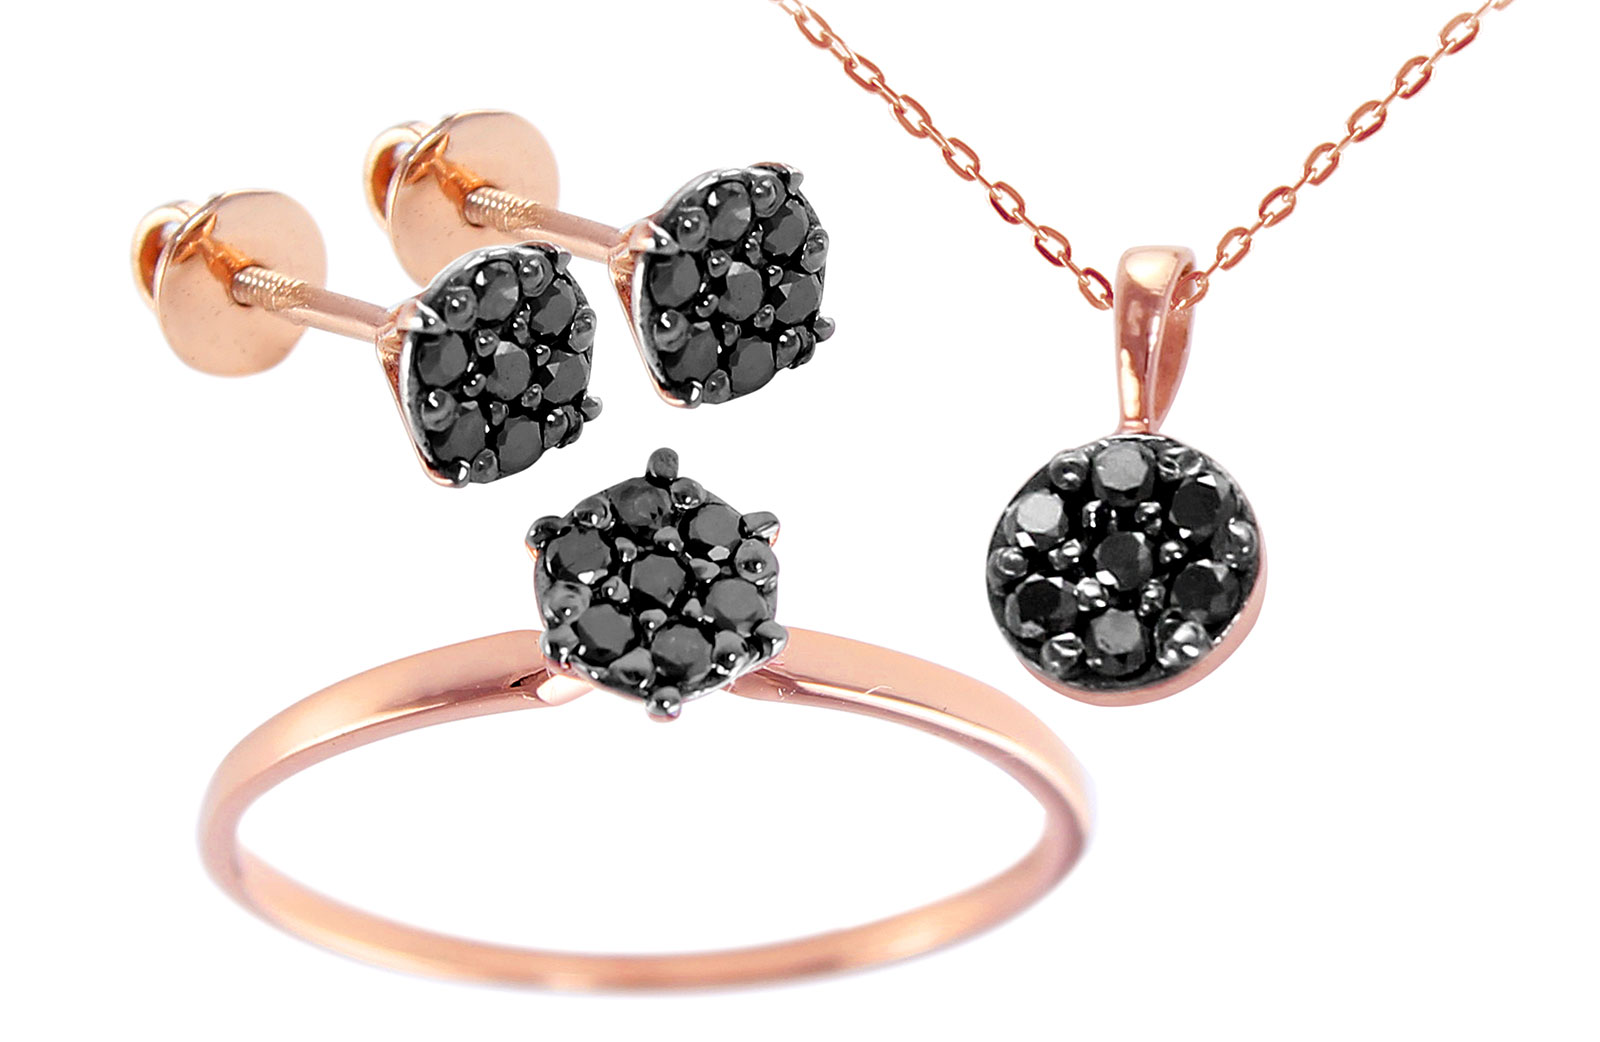 Vera Perla 18k Rose and Black Gold Black Diamonds Solitaire Earrings, Ring and Necklace Set